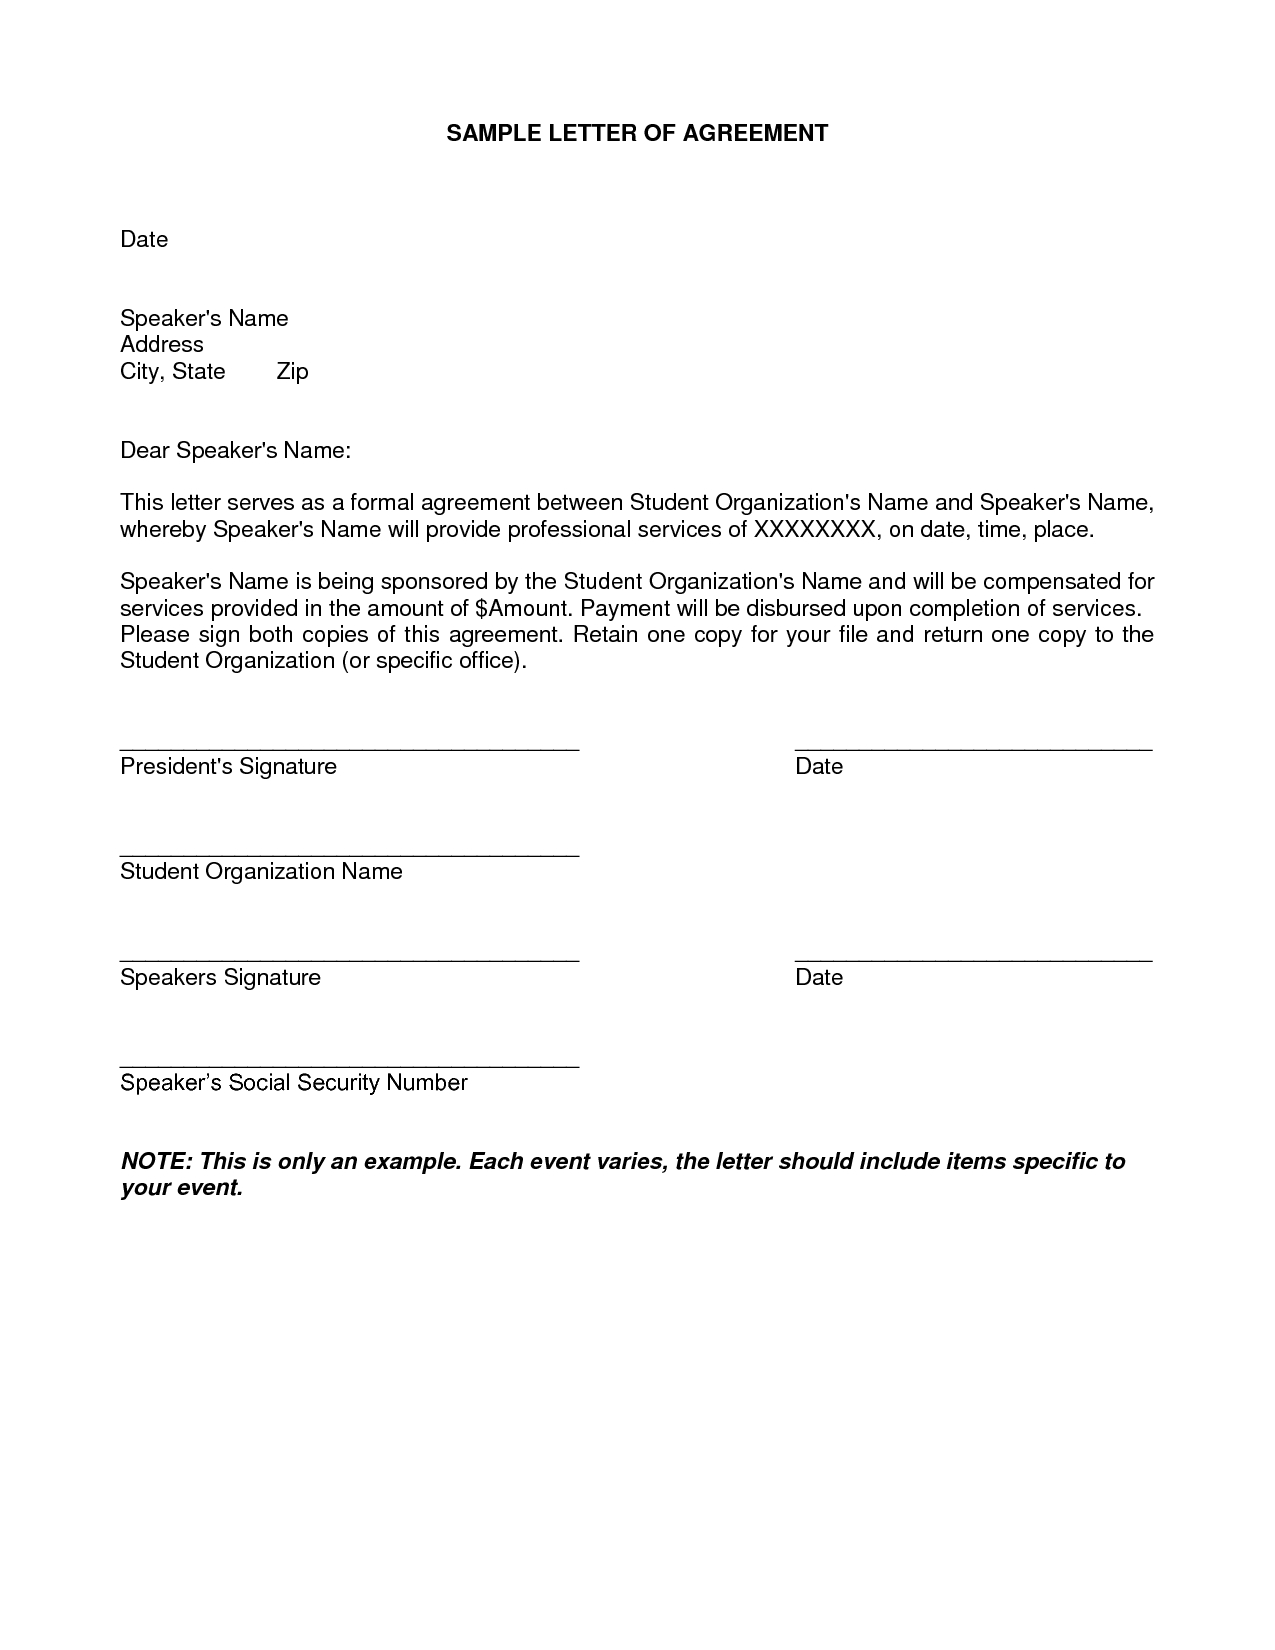 Personal Loan Repayment Letter Template - Letter Agreement Samples Template Seeabruzzo Letter Of